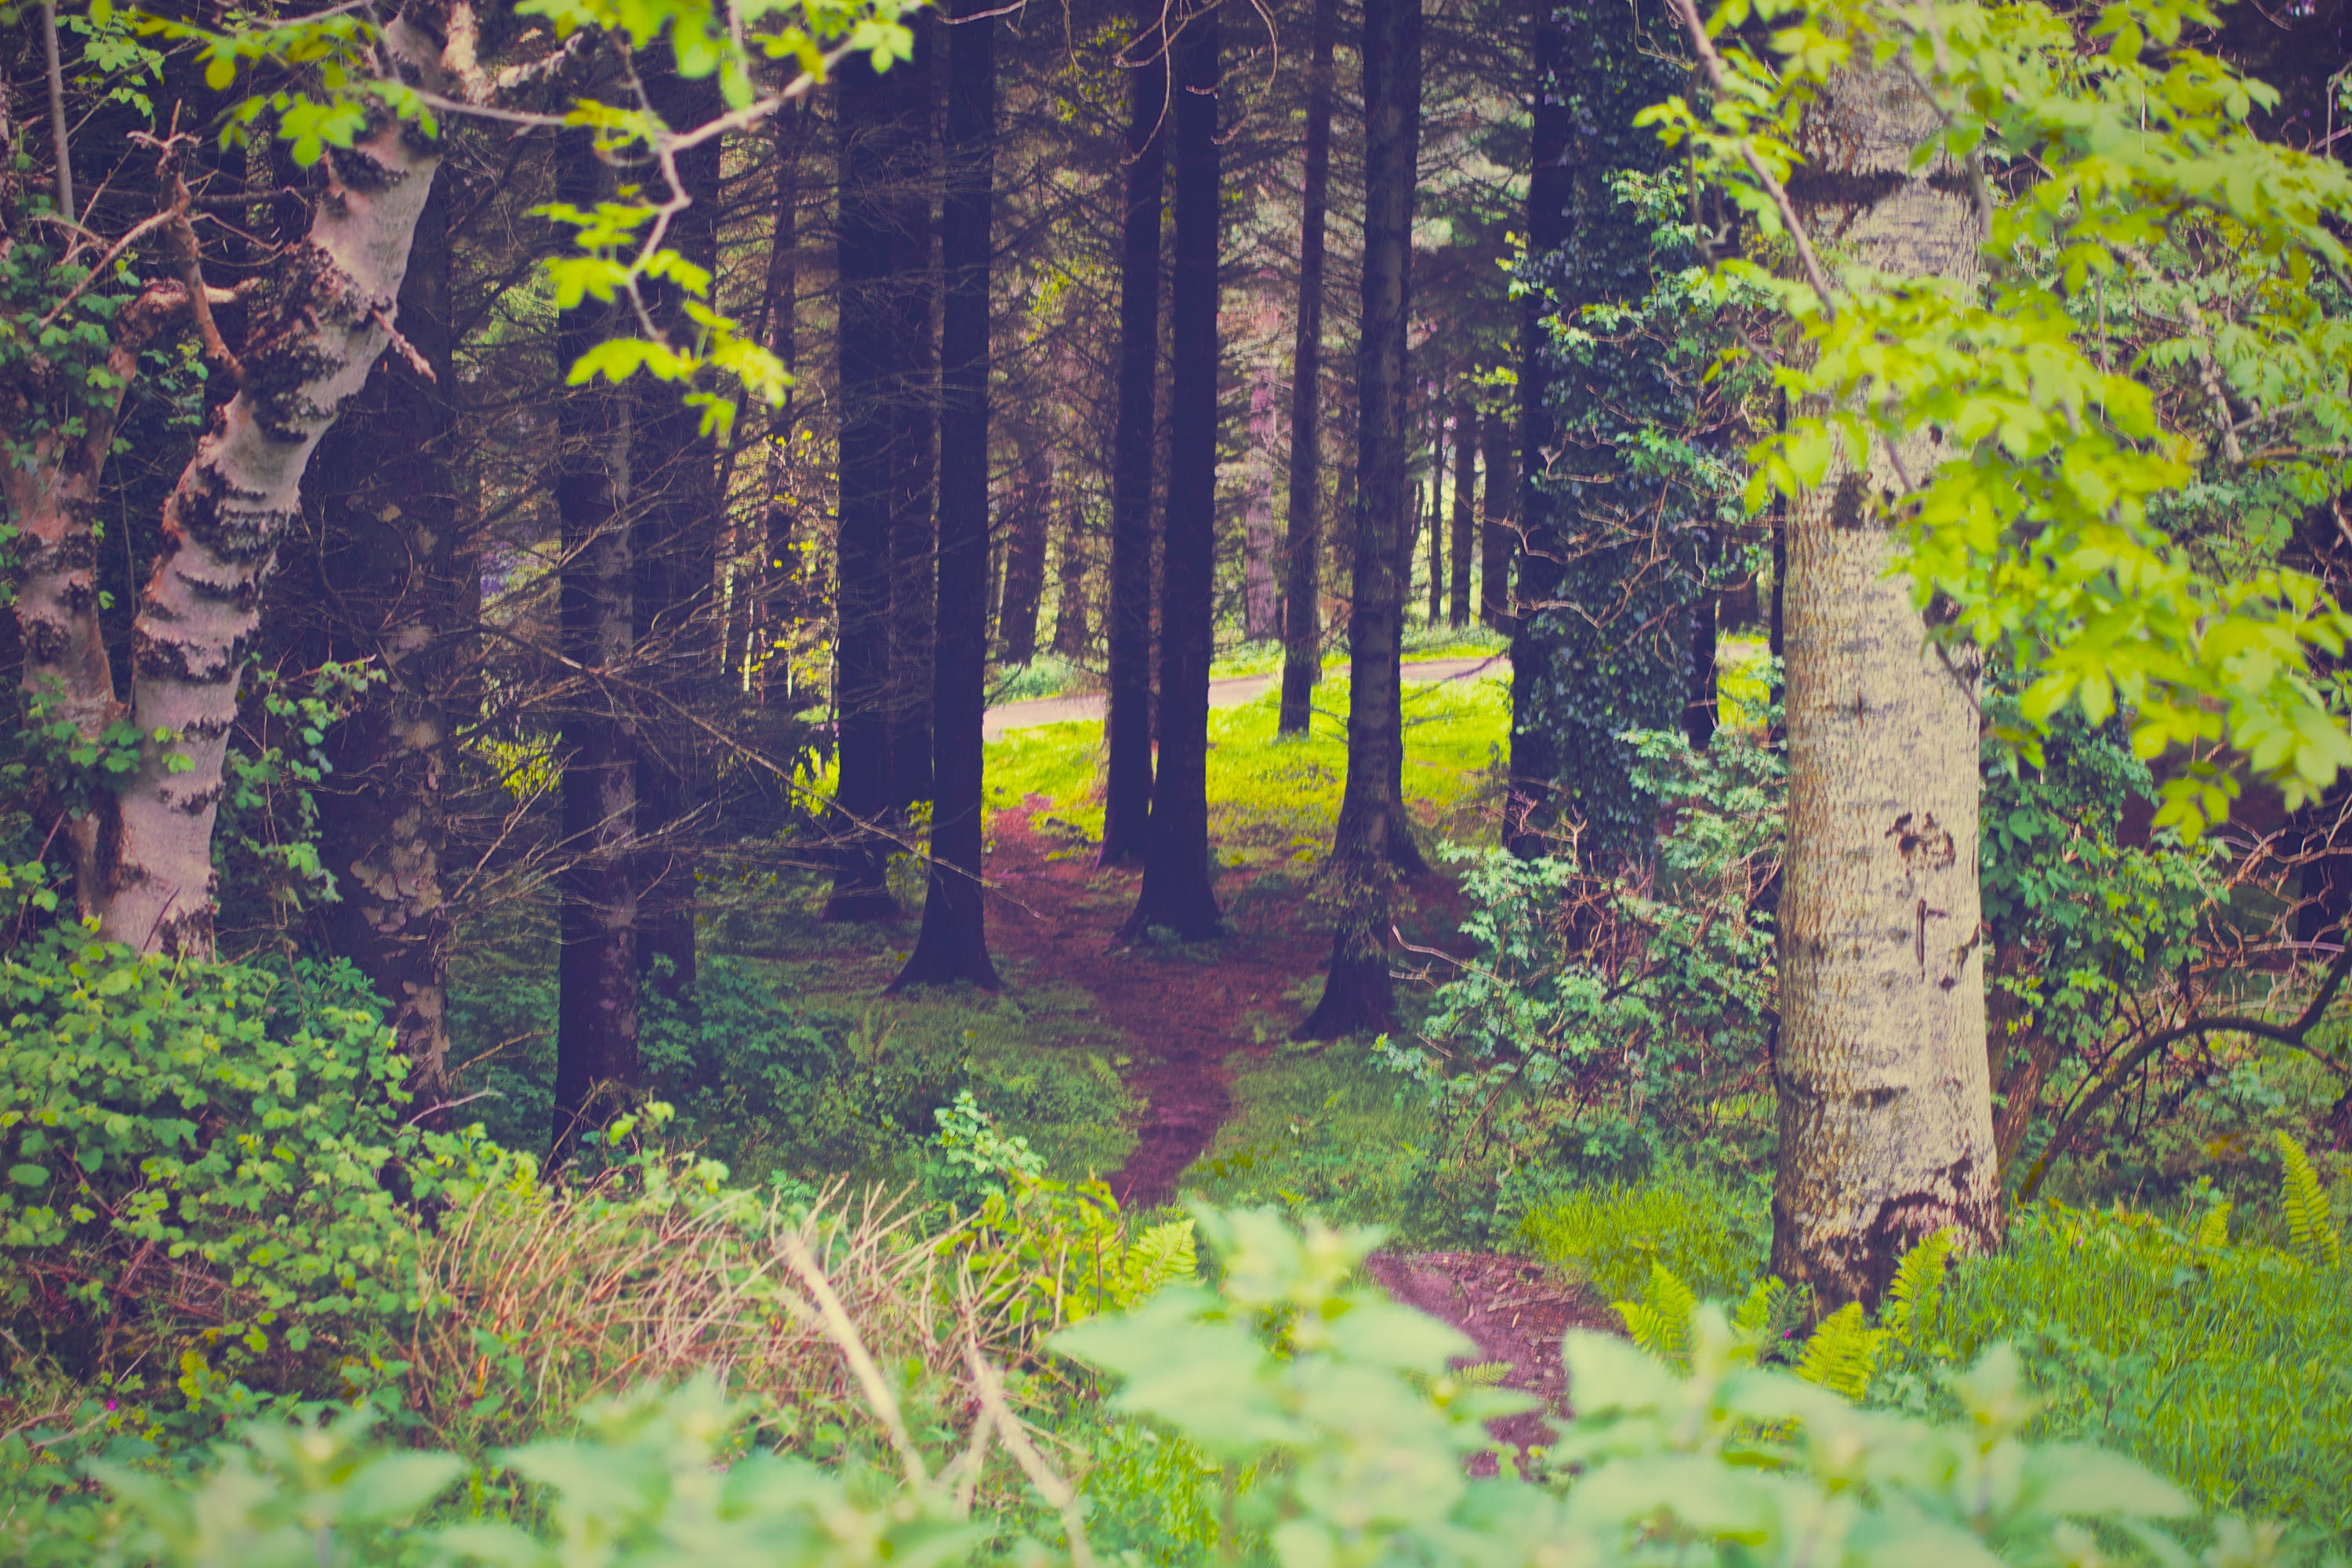 Free stock photo of nature, forest, trees, path